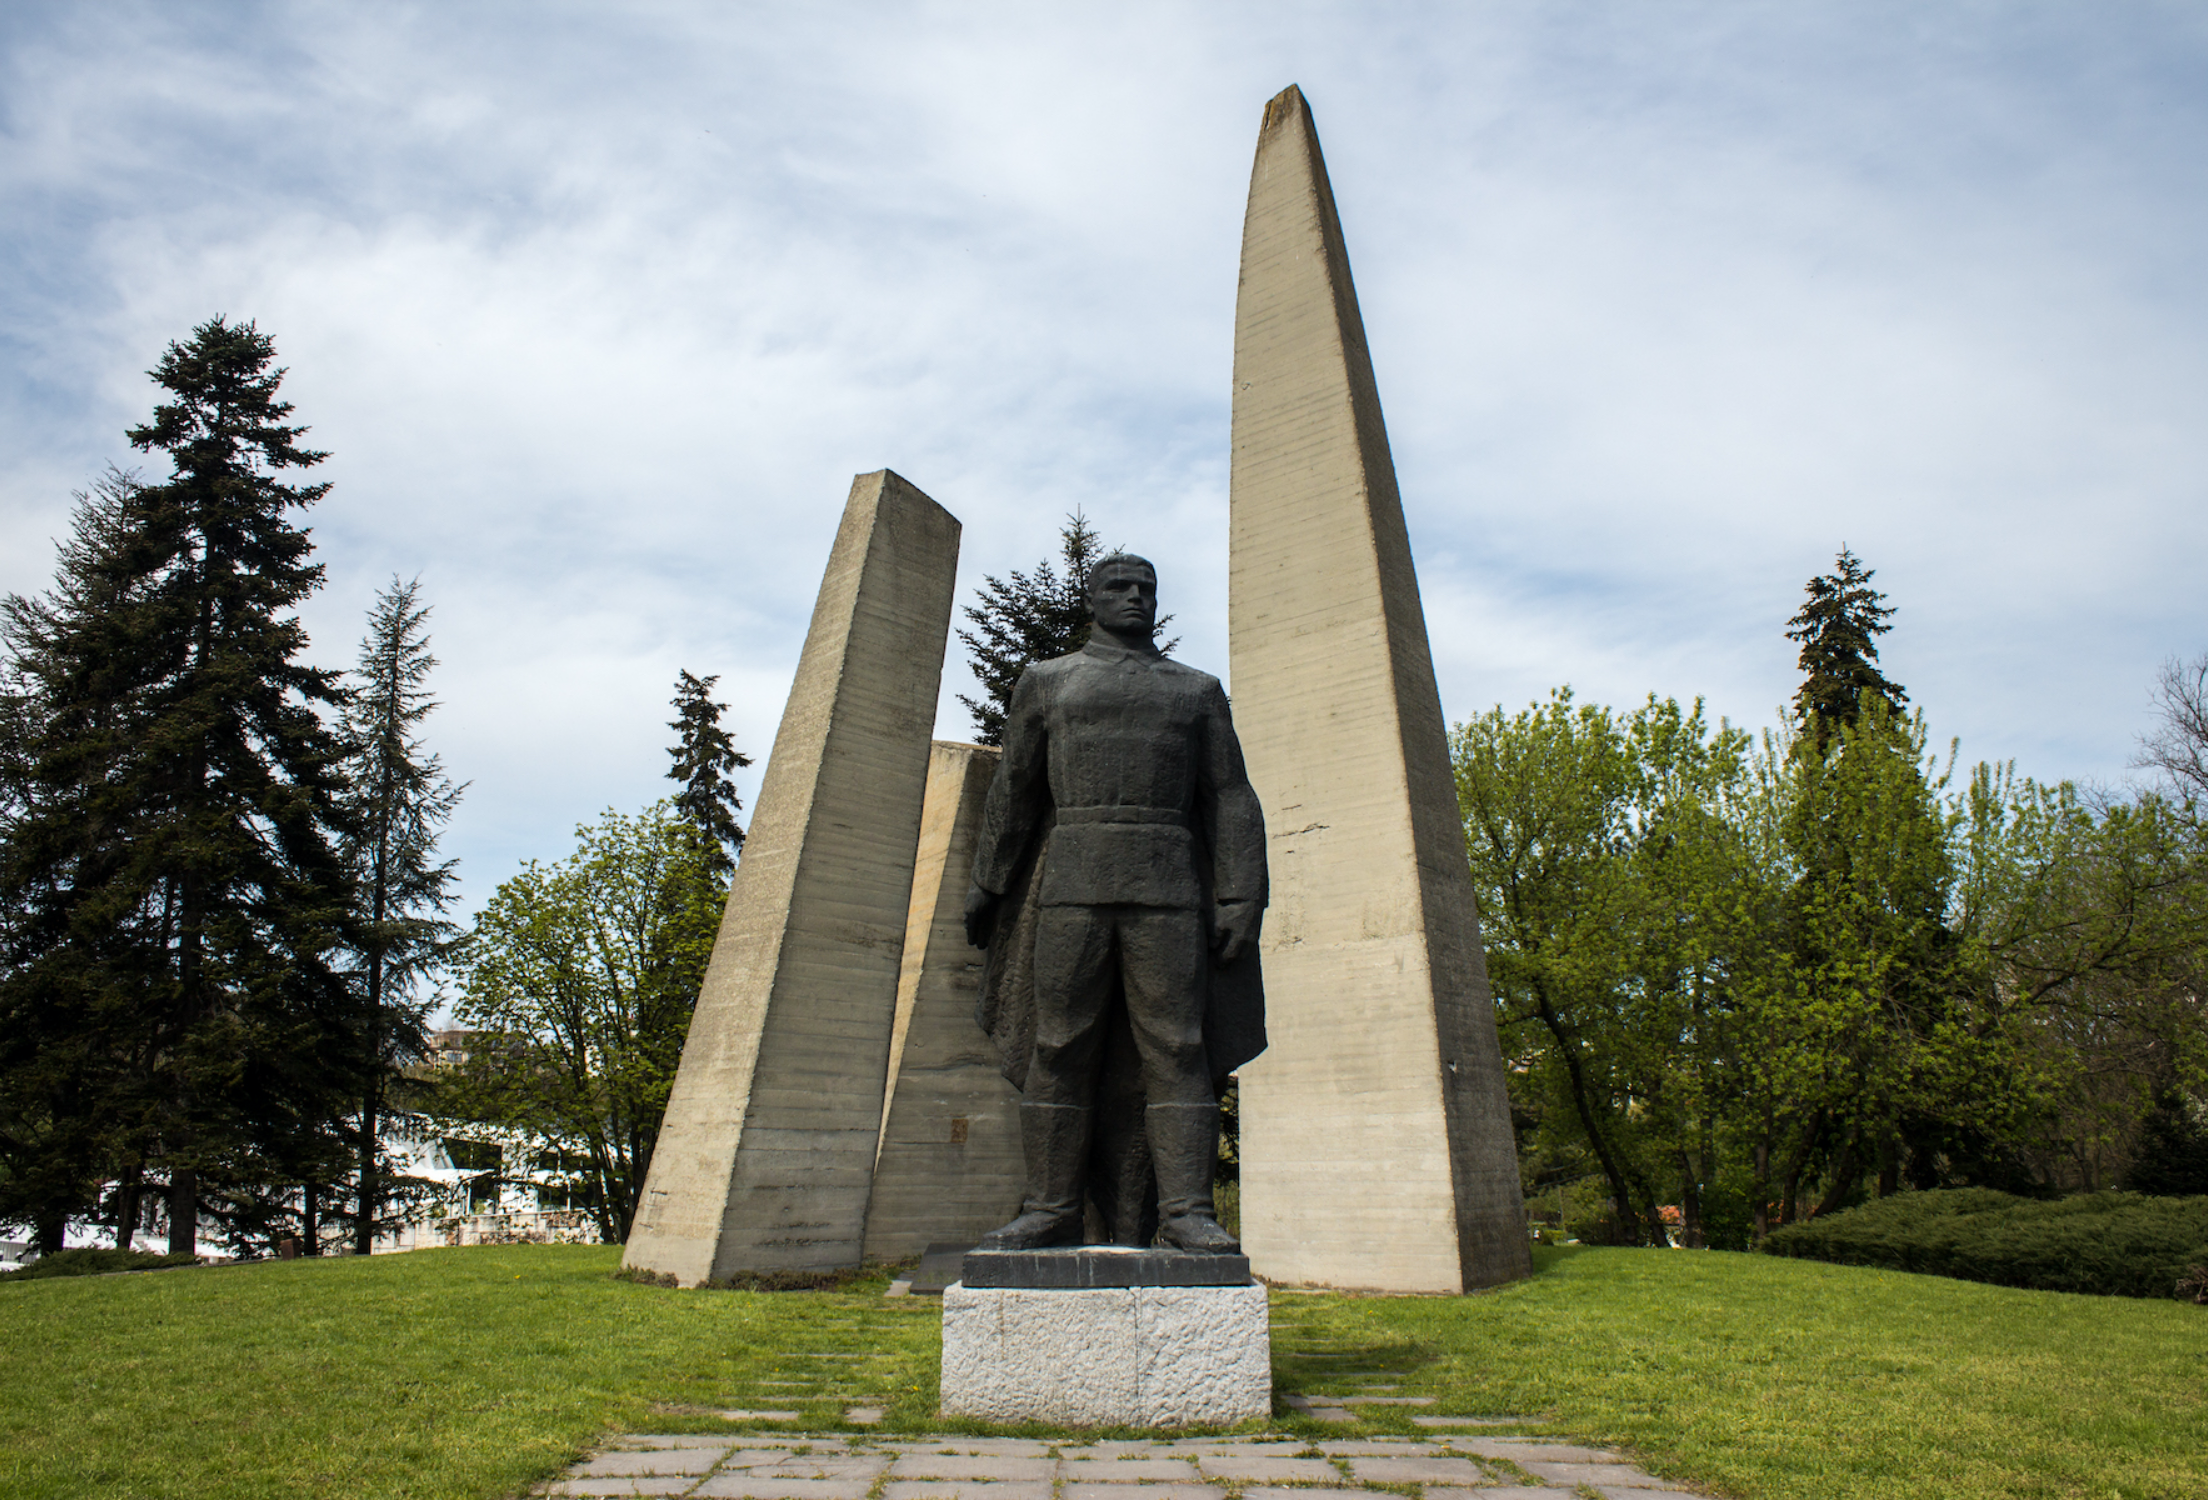 Monument to the Dead in the Great Patriotic War, Dobrich (1964).